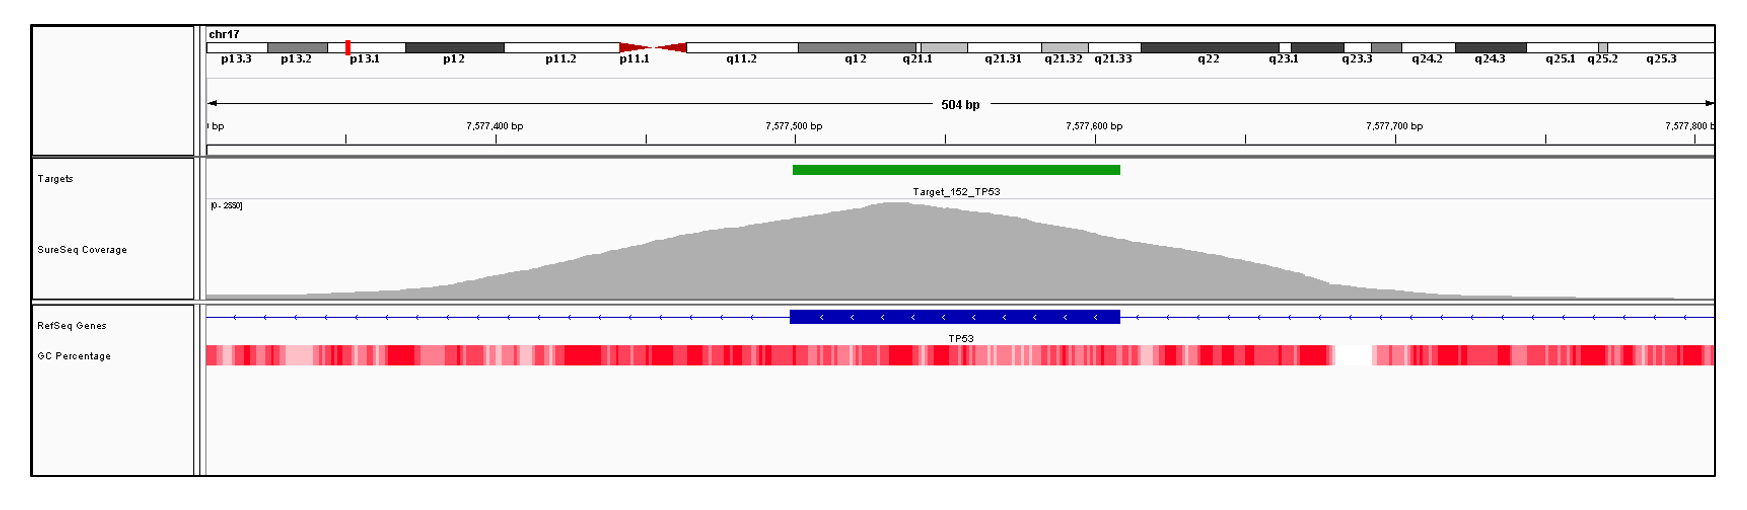 TP53 Exon 7 (hg19 chr17:7577499-7577608). Depth of coverage per base (grey). Targeted region (green). Gene coding region as defined by RefSeq (blue). GC percentage (red). Image